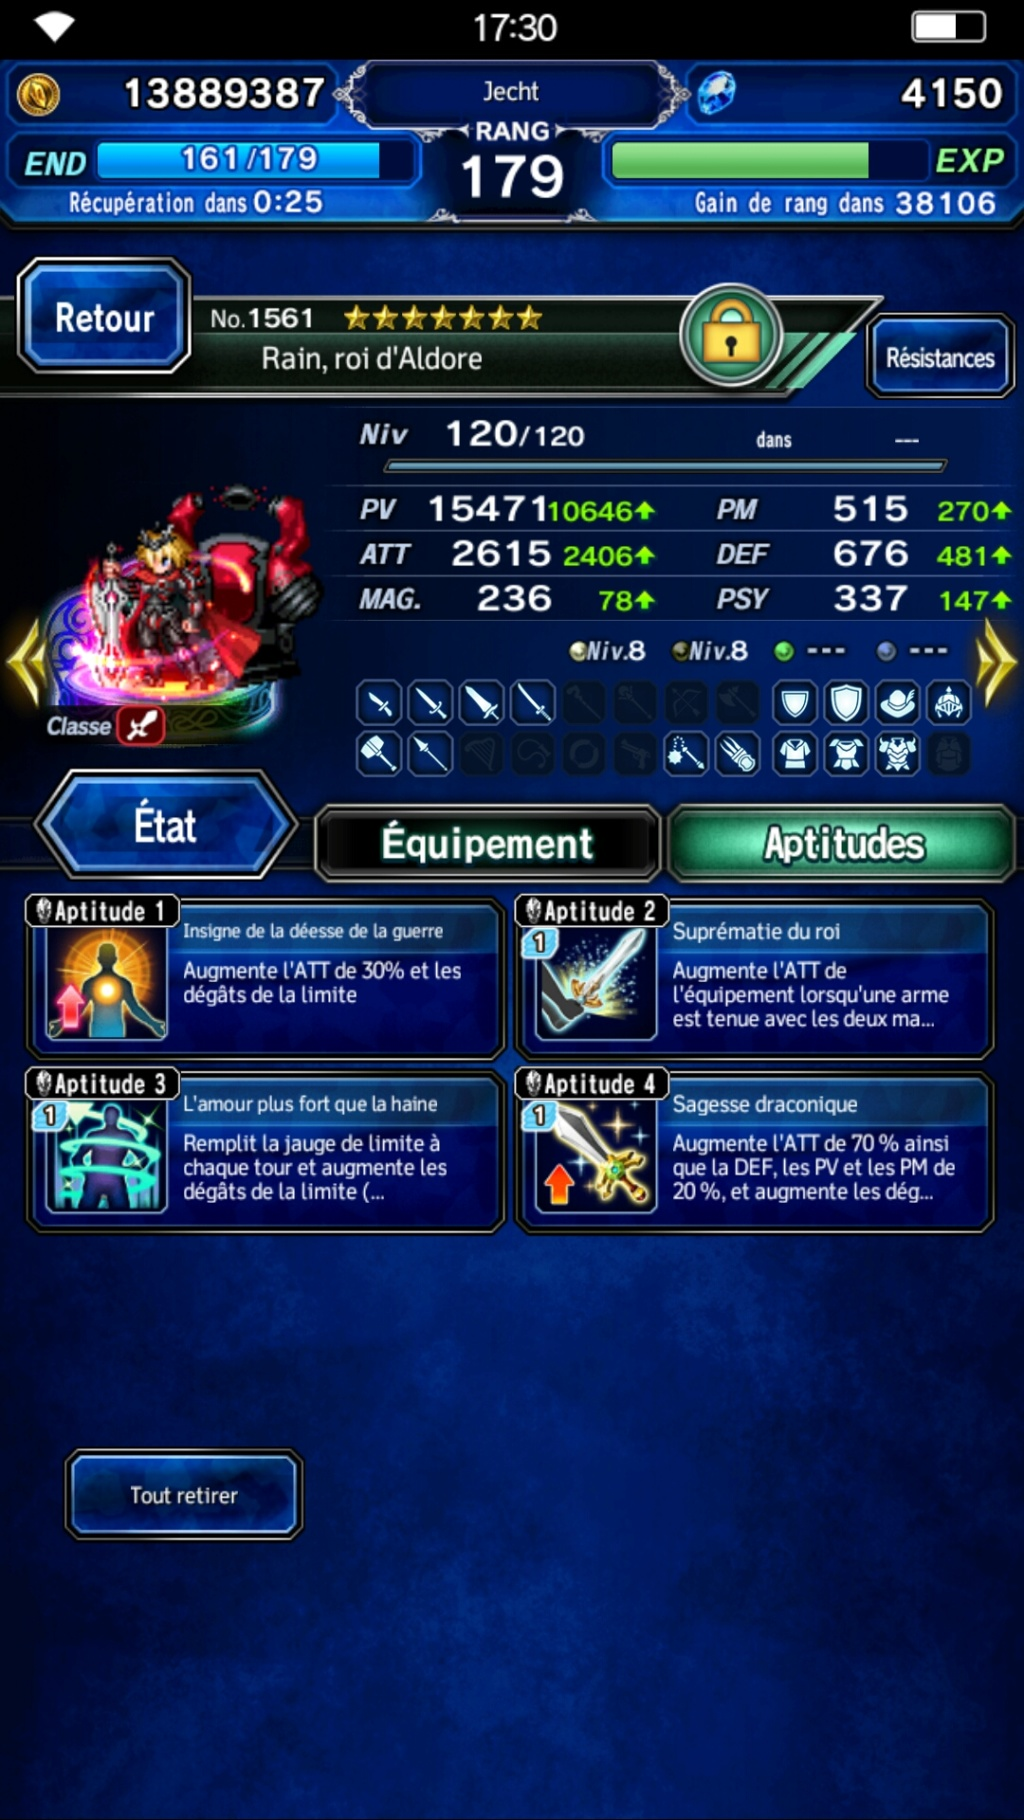 Invocations du moment - FFBE (AKRain) - du 07/11 au 21/11/19 - Page 4 Scree108